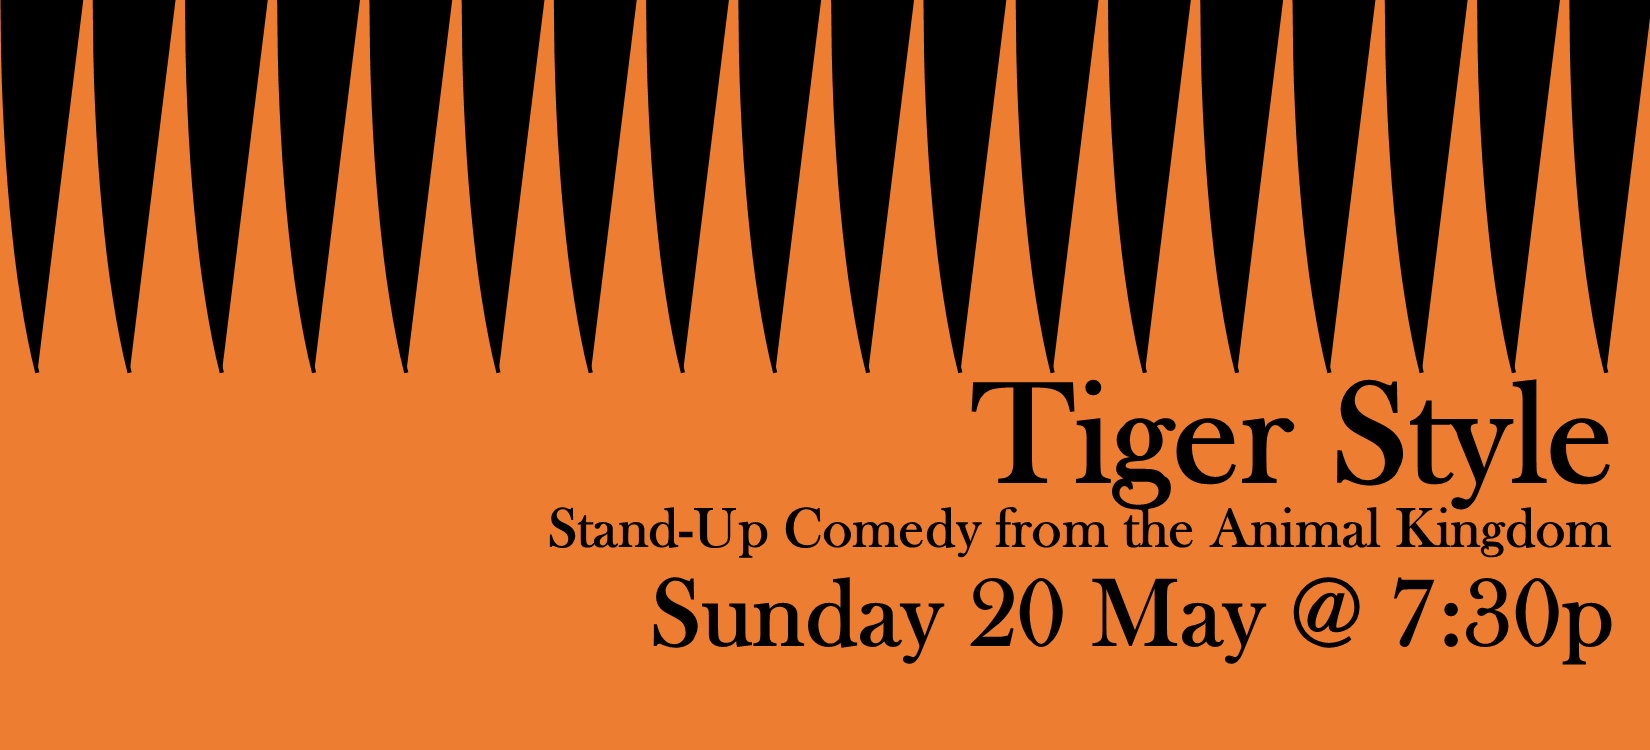 Ever wonder what jokes a Tiger would tell? What a horse's feelings on life are? What a sea cucumber's inner thoughts are?  Well now you can find out at Tiger Style, a safari of wild stand-up comedy from the animal kingdom! At this show you'll see a group of diverse animals doing totally original comedy about their animal lives! It's a comedy experience like no other! Doors open at 7:00pm/Show starts 7:30pm £4 Online/£5 at the door Hosted by Camel L. Jackson and featuring: Anna Dominey Graeme Hunter Sarah Mann Kitty Speed  and more (maybe)!